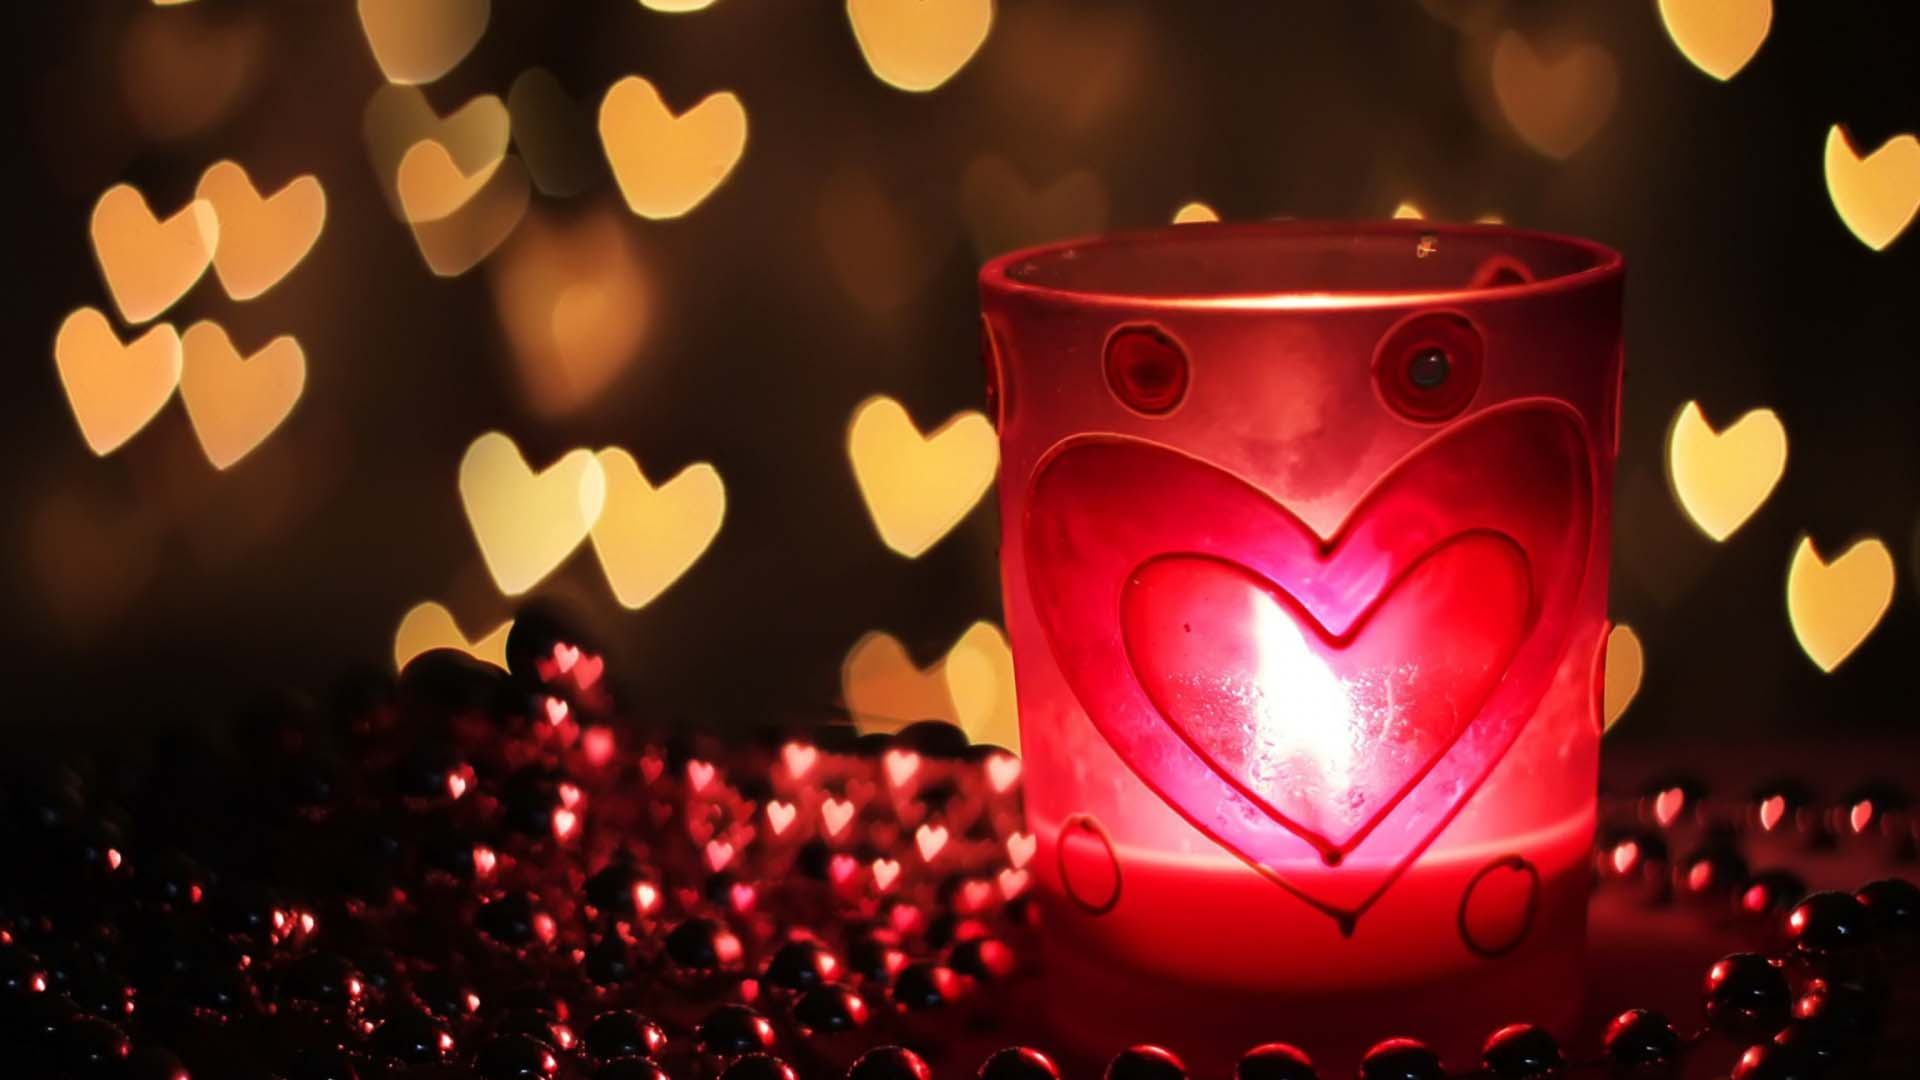 Love Free Wallpapers Download Group 1920x1080